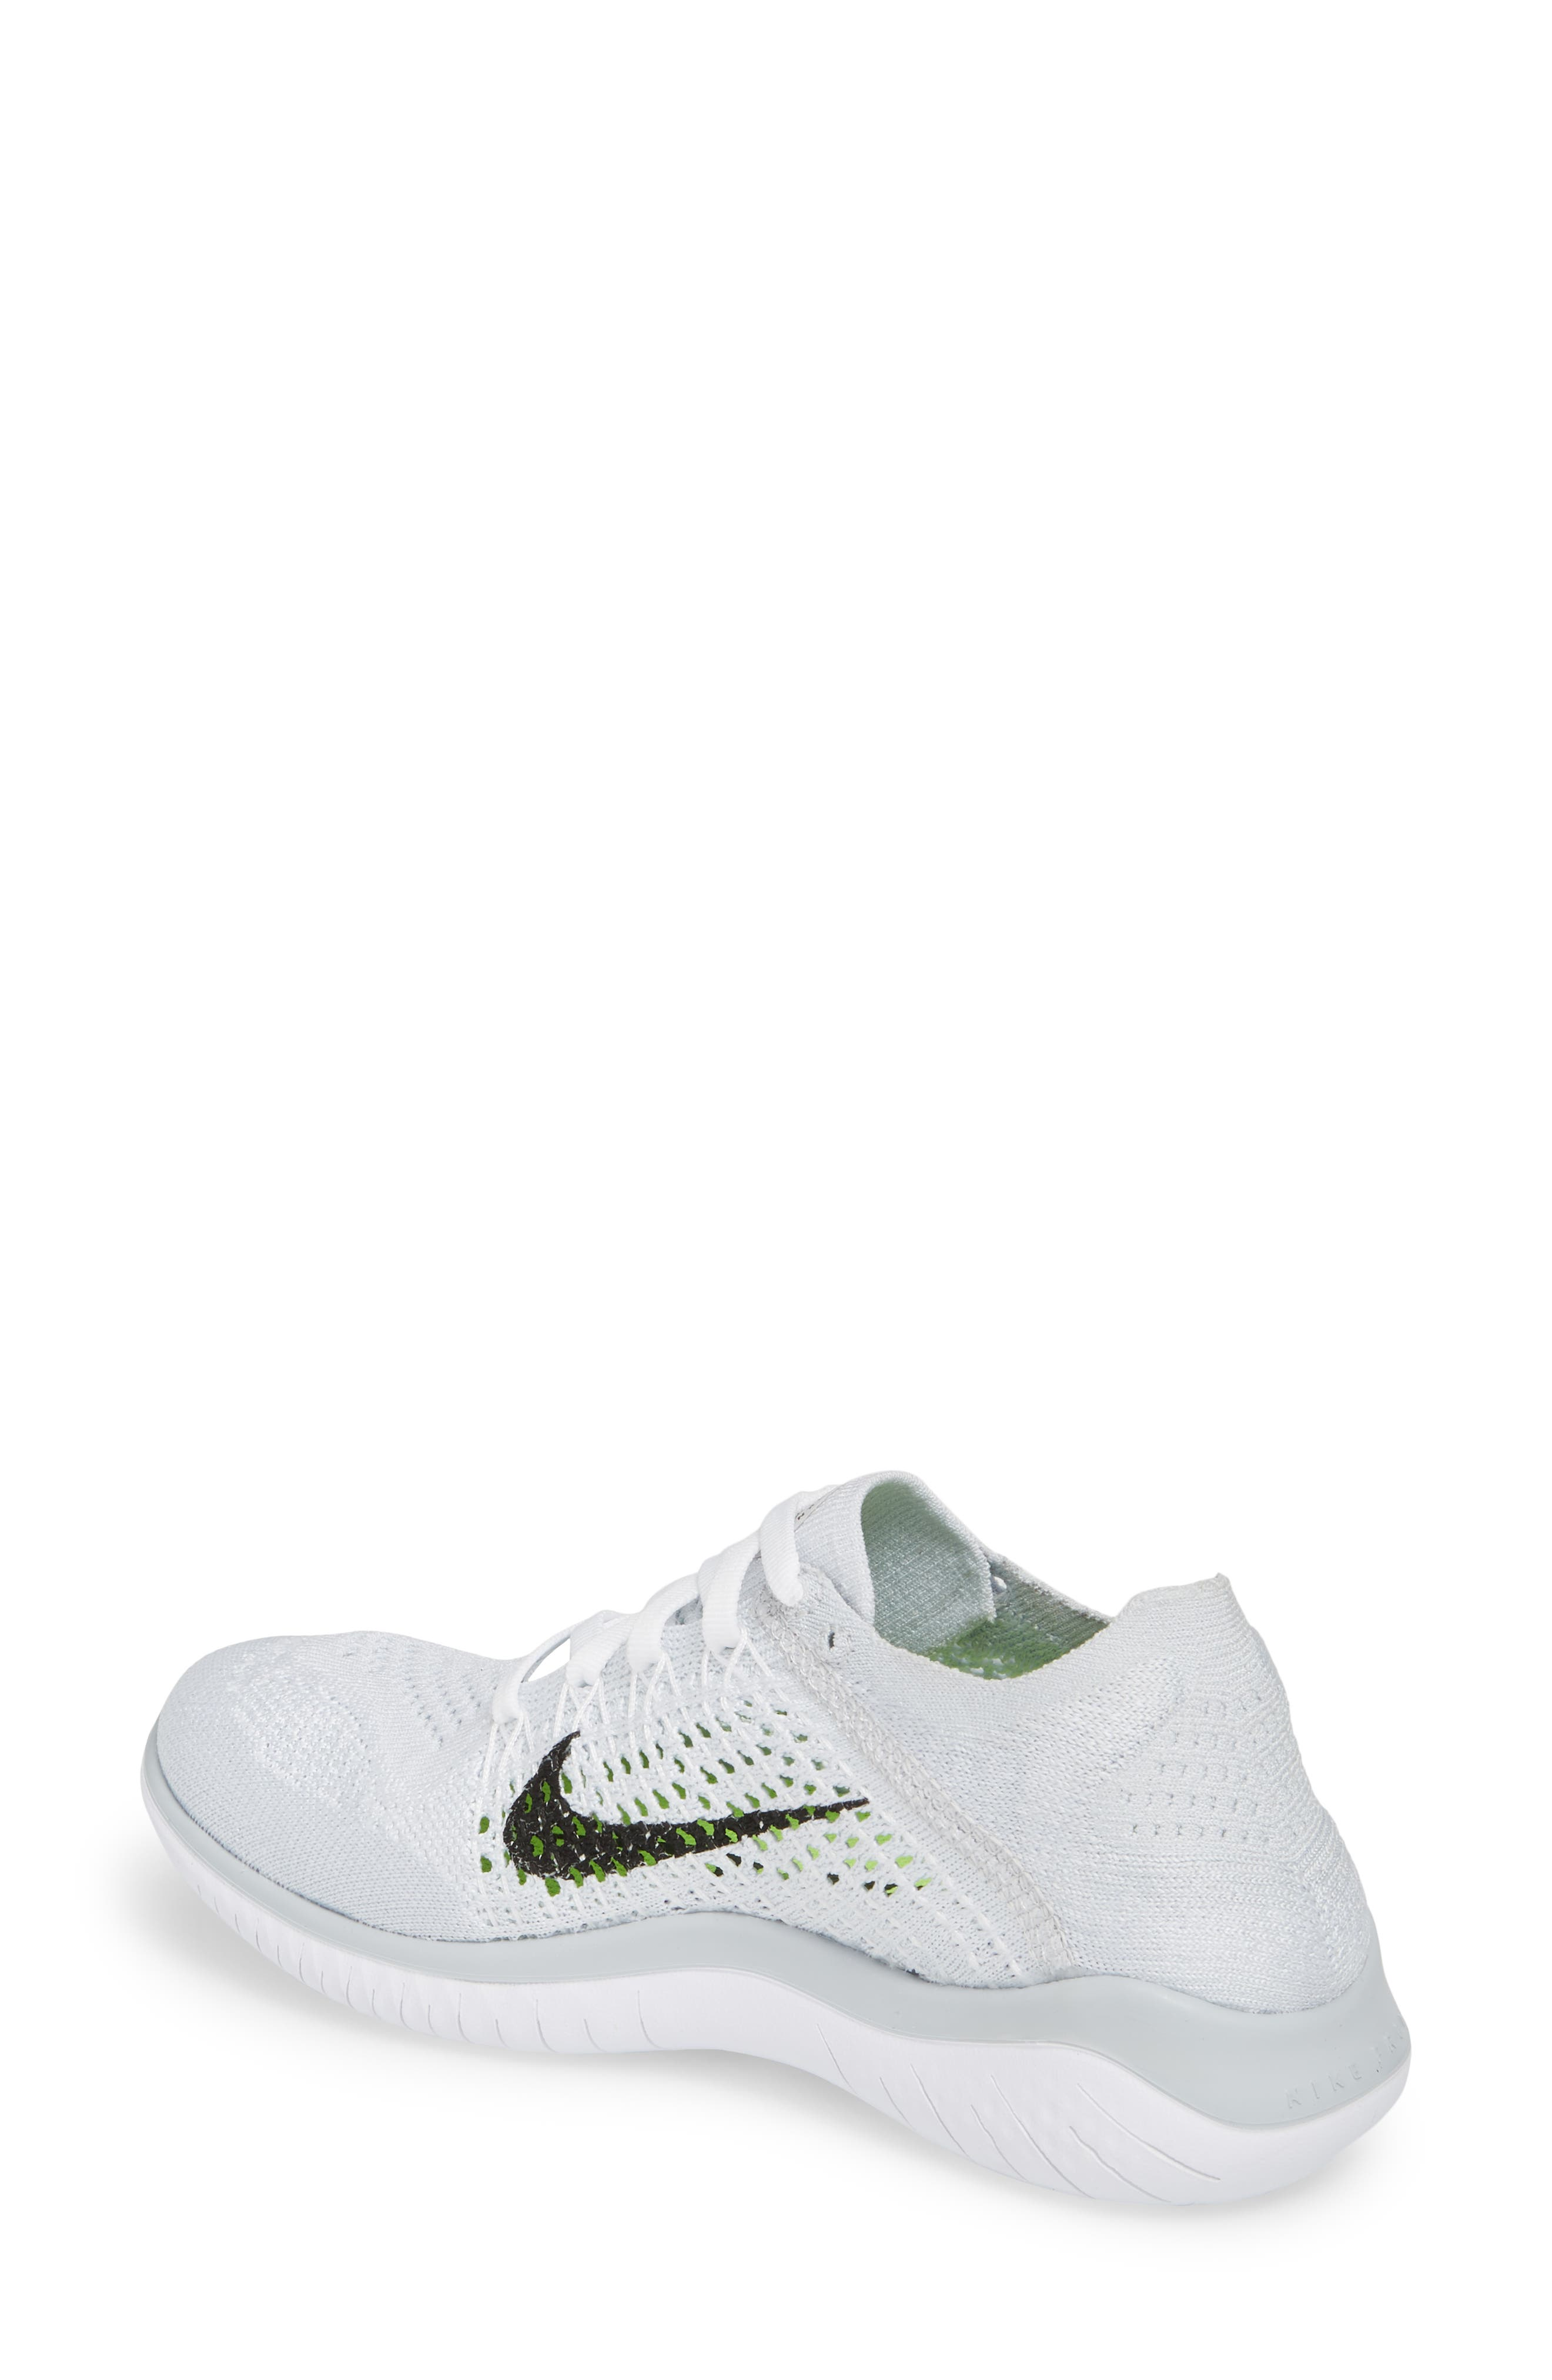 Free RN Flyknit 2018 Running Shoe,                             Alternate thumbnail 2, color,                             WHITE/ BLACK/ PURE PLATINUM